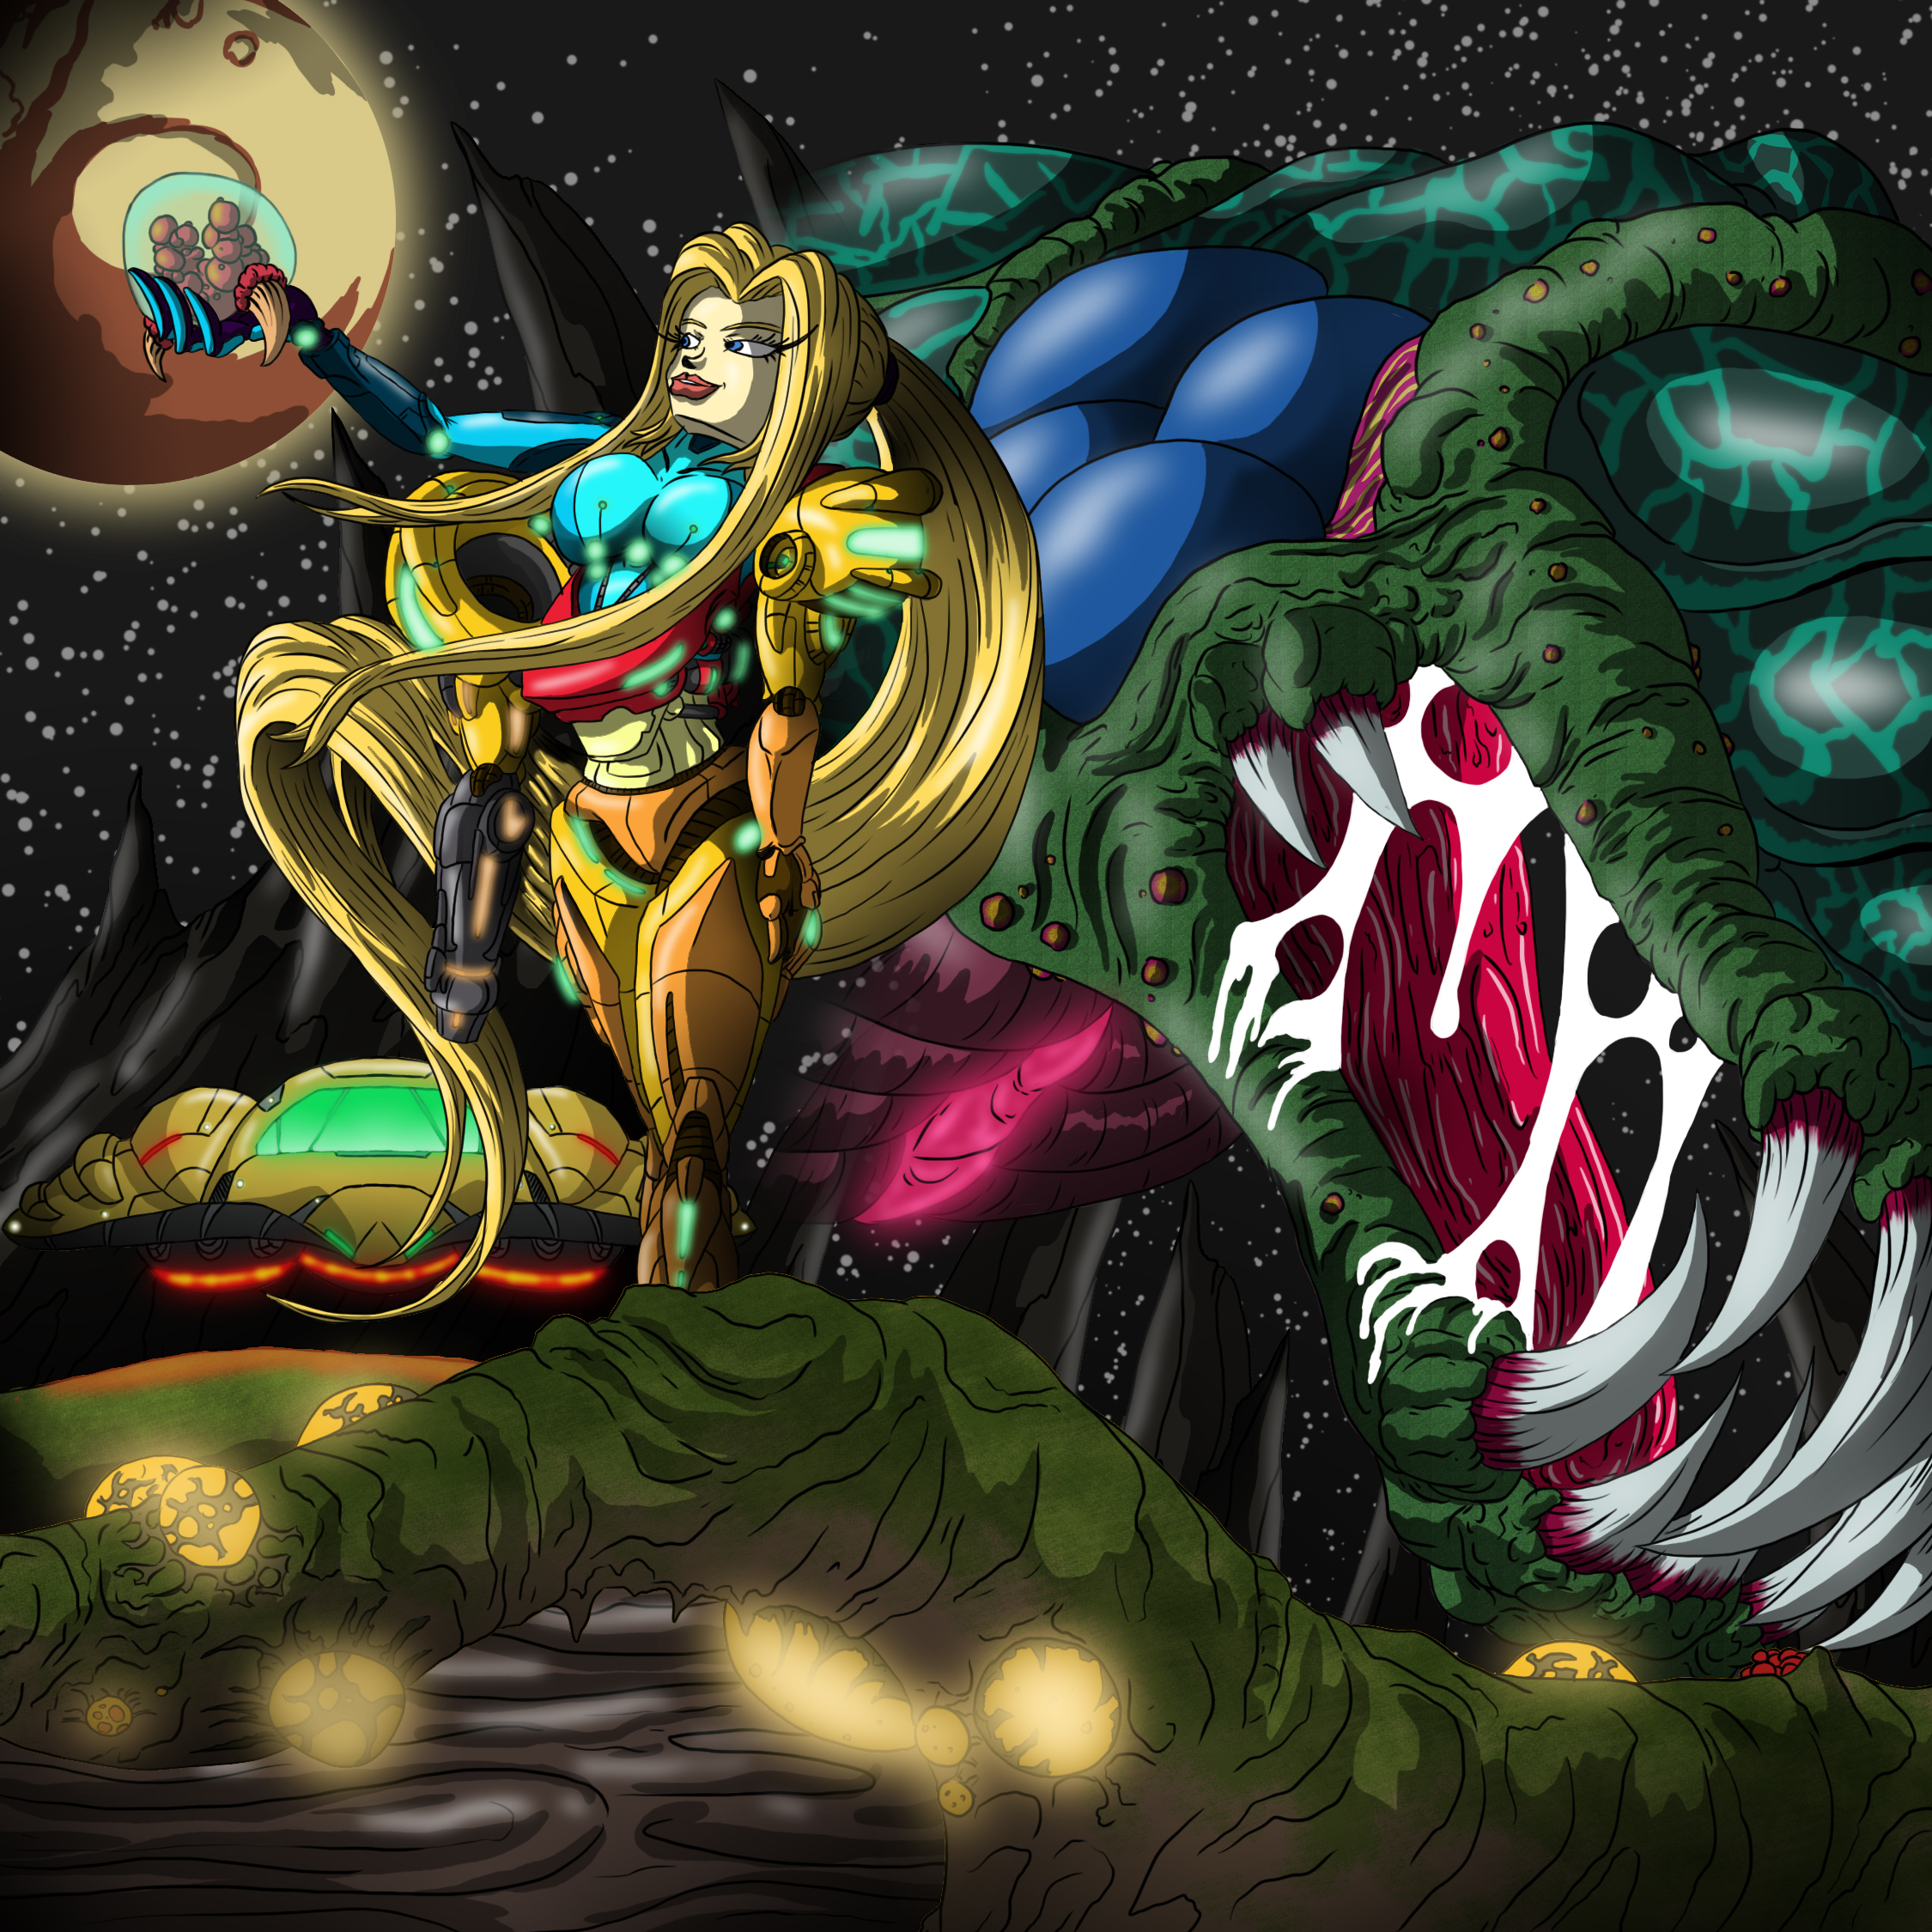 Samus with baby Metroid and Mother